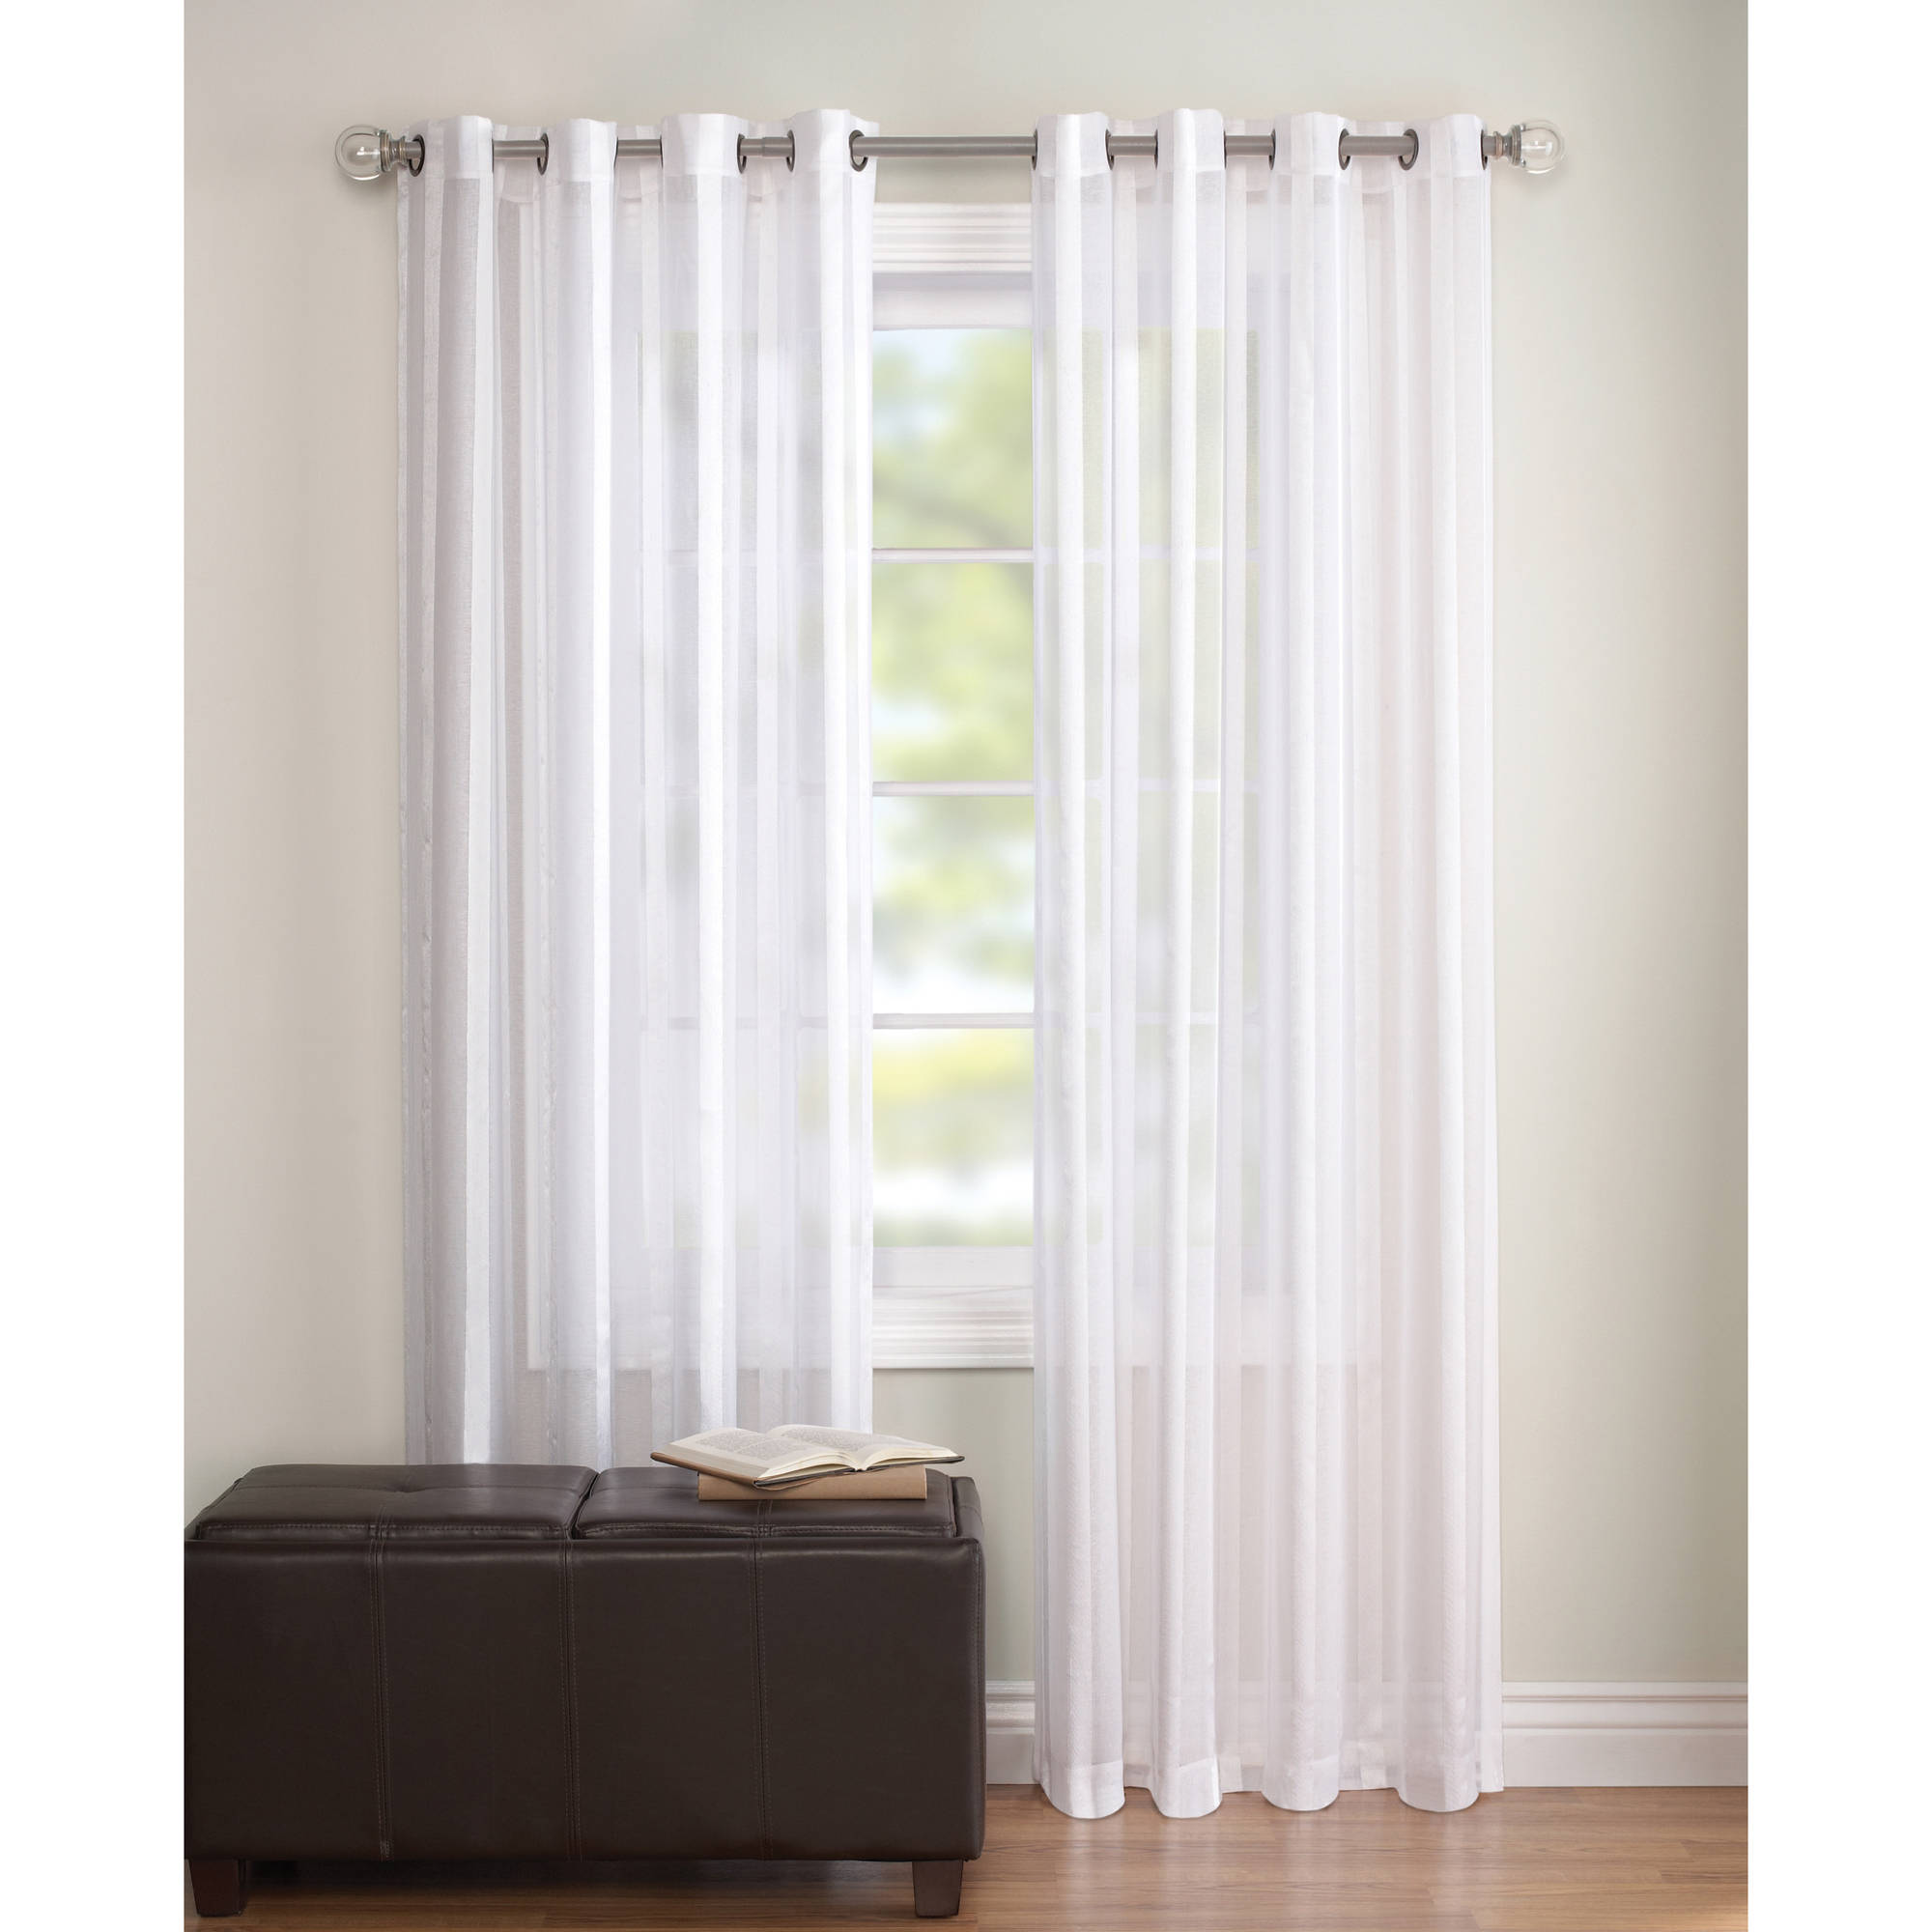 White curtain panels - White Curtain Panels 2